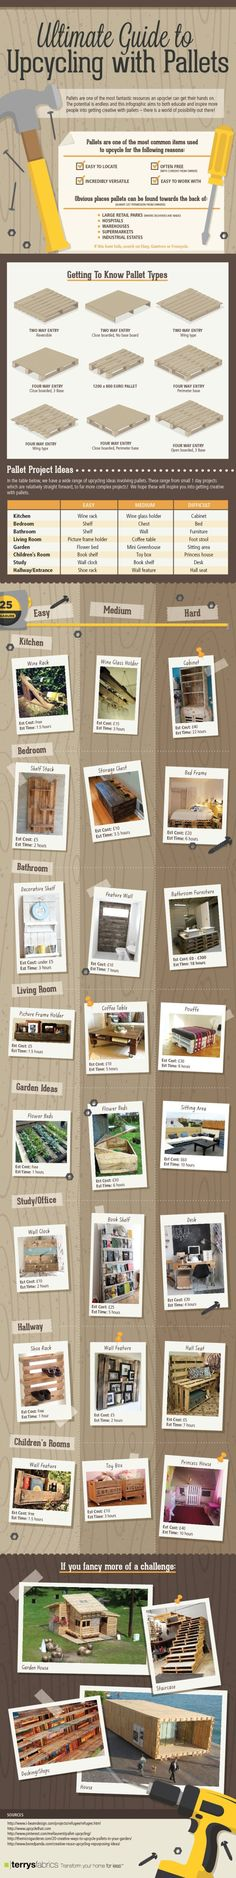 Guide To Upcycling Pallets 1001 Pallets, Recycled wood pallet ideas, DIY pallet Projects ! - Part 181001 Pallets, Recycled wood pallet ideas, DIY pallet Projects ! - Part 18